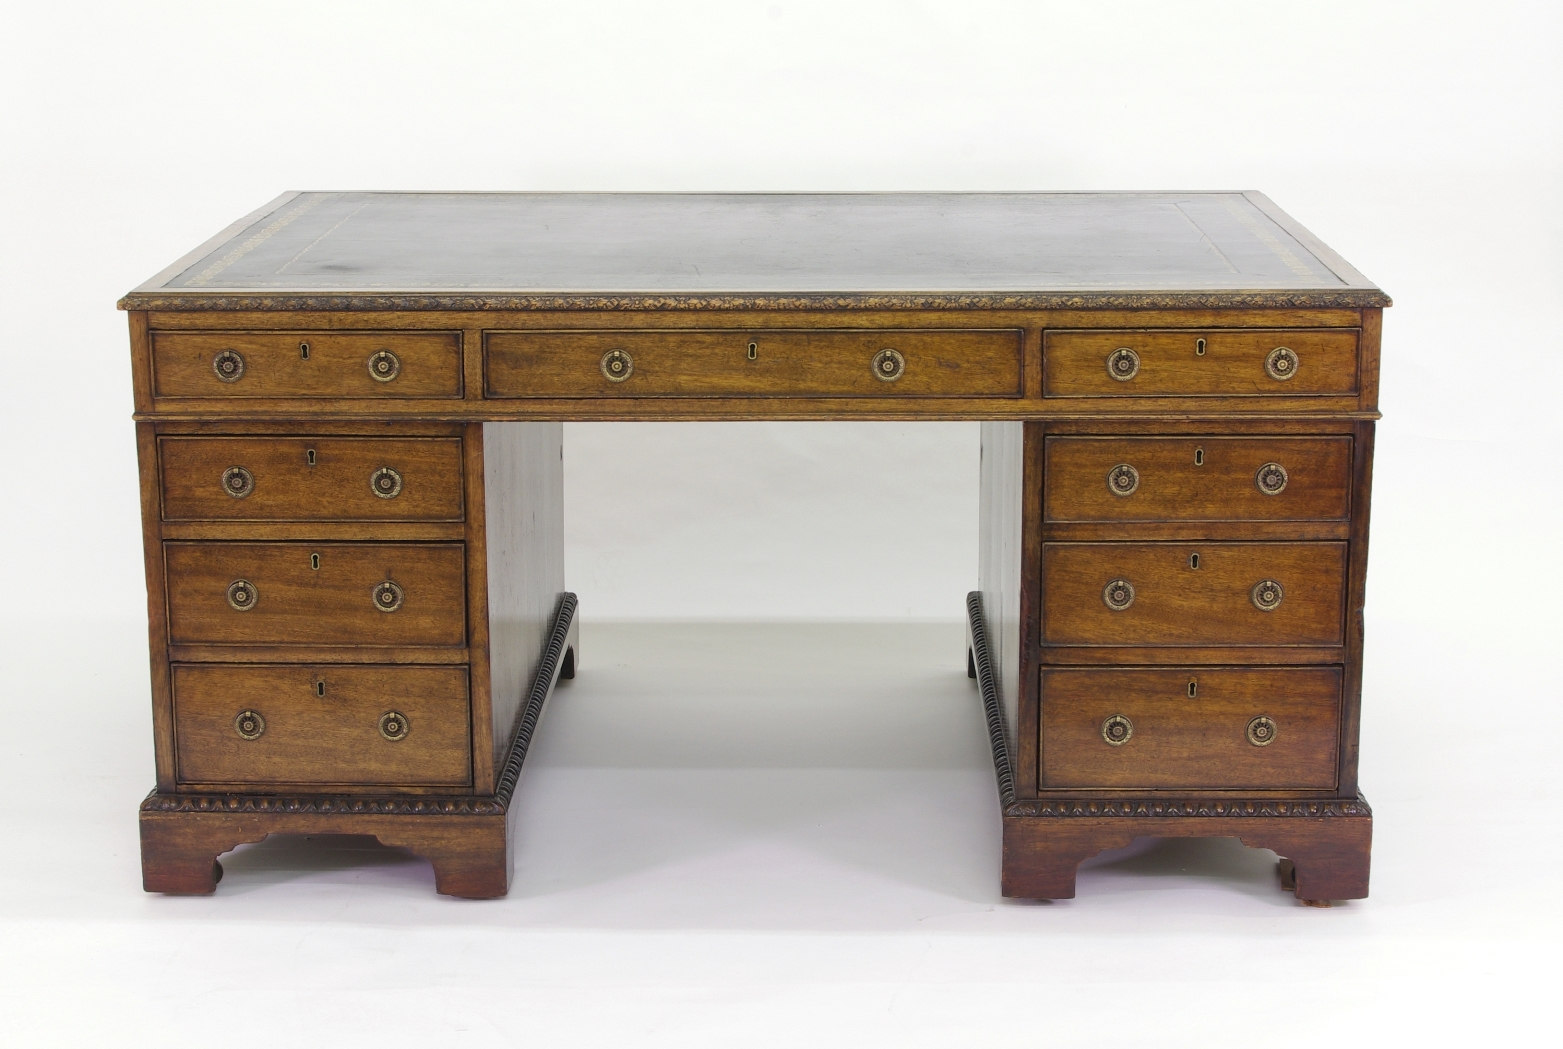 View 2: Victorian Mahogany Partners Desk, c. 1840-60